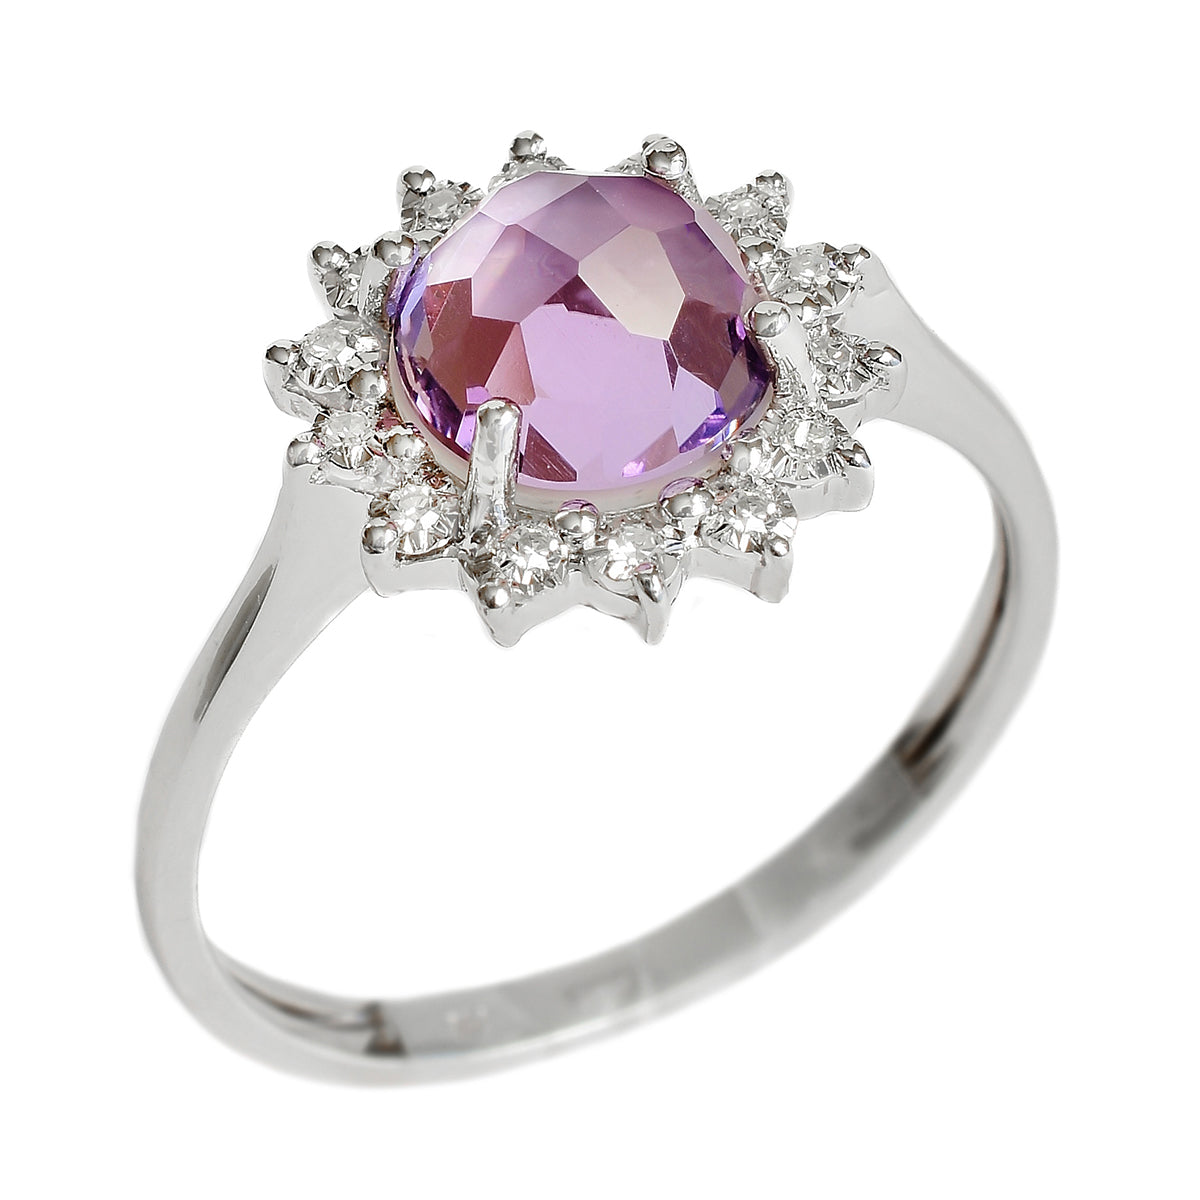 9K SOLID WHITE GOLD 1.40CT NATURAL DOME AMETHYST HALO RING WITH 14 DIAMONDS.